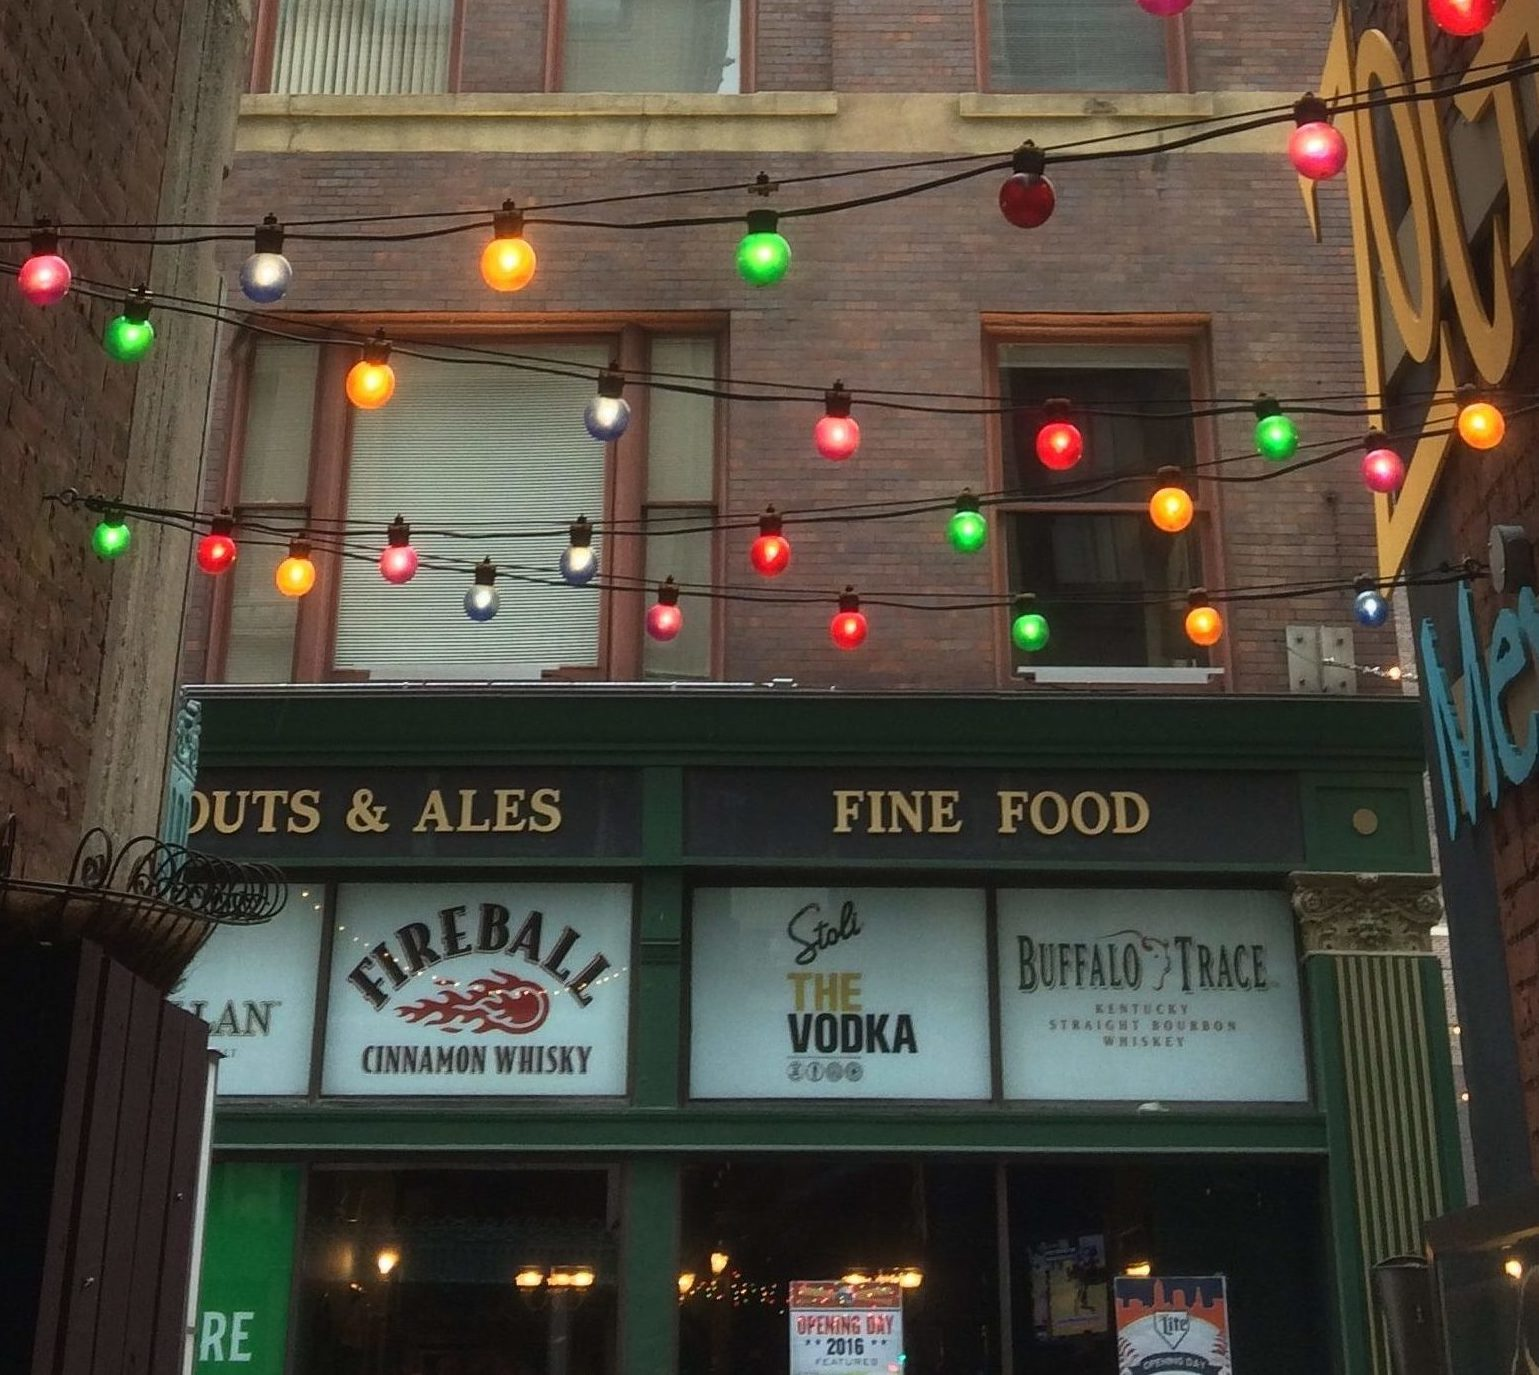 Public Houses (Pubs) and Irish Bars in Cleveland